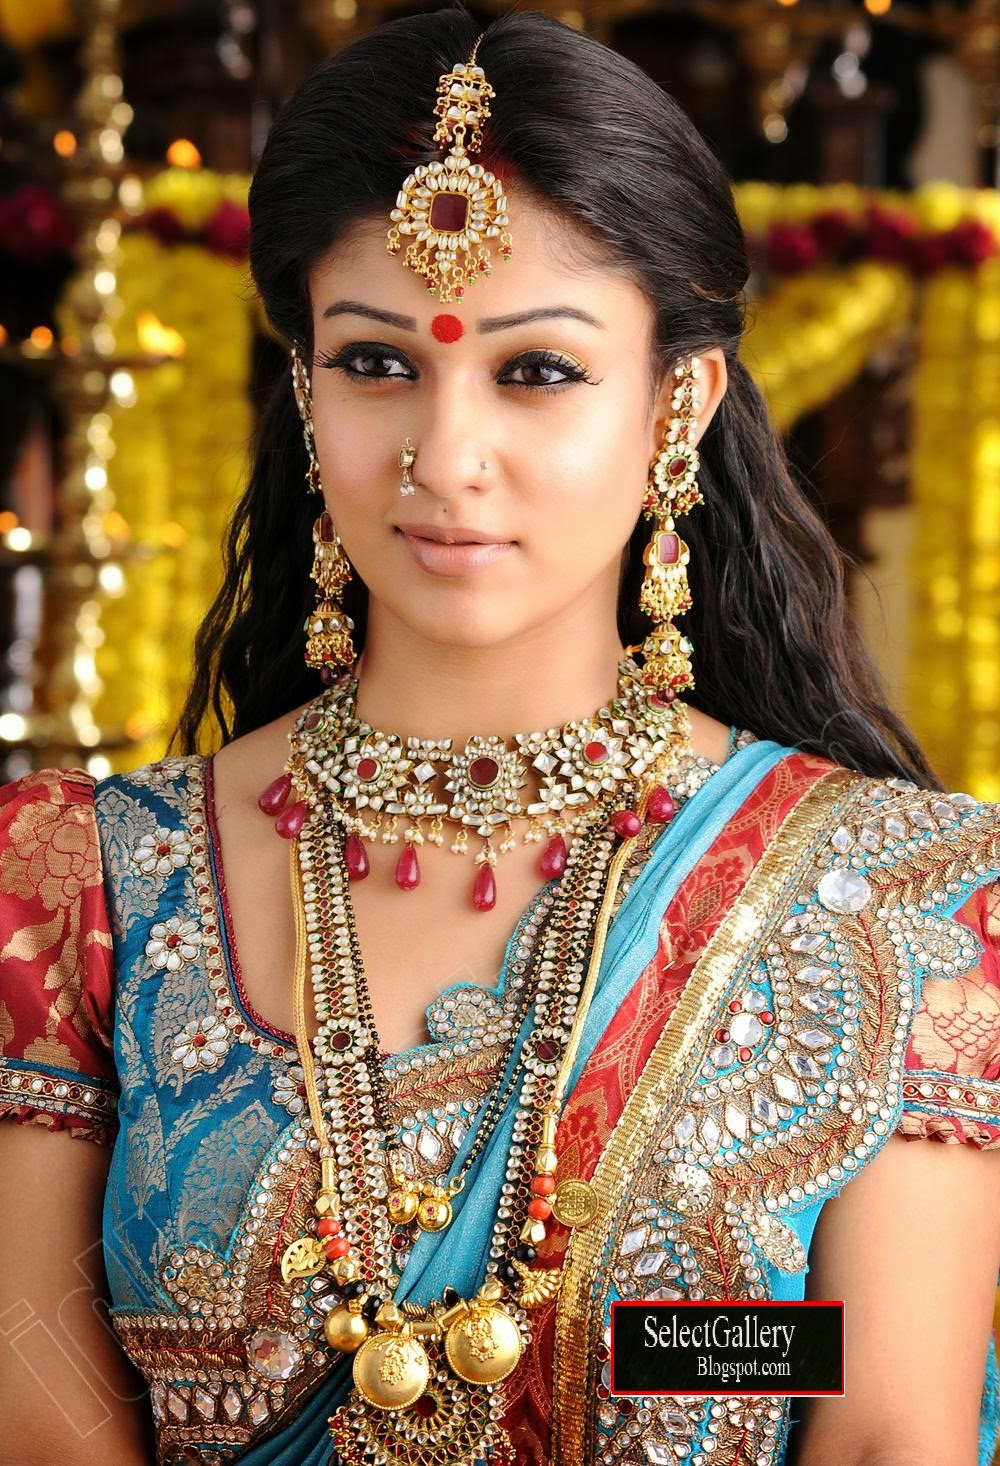 actress nayanthara indian looks wear saree tara south traditional film actresses sahaja stylish nayantara buli chil telugu open copyright ornaments